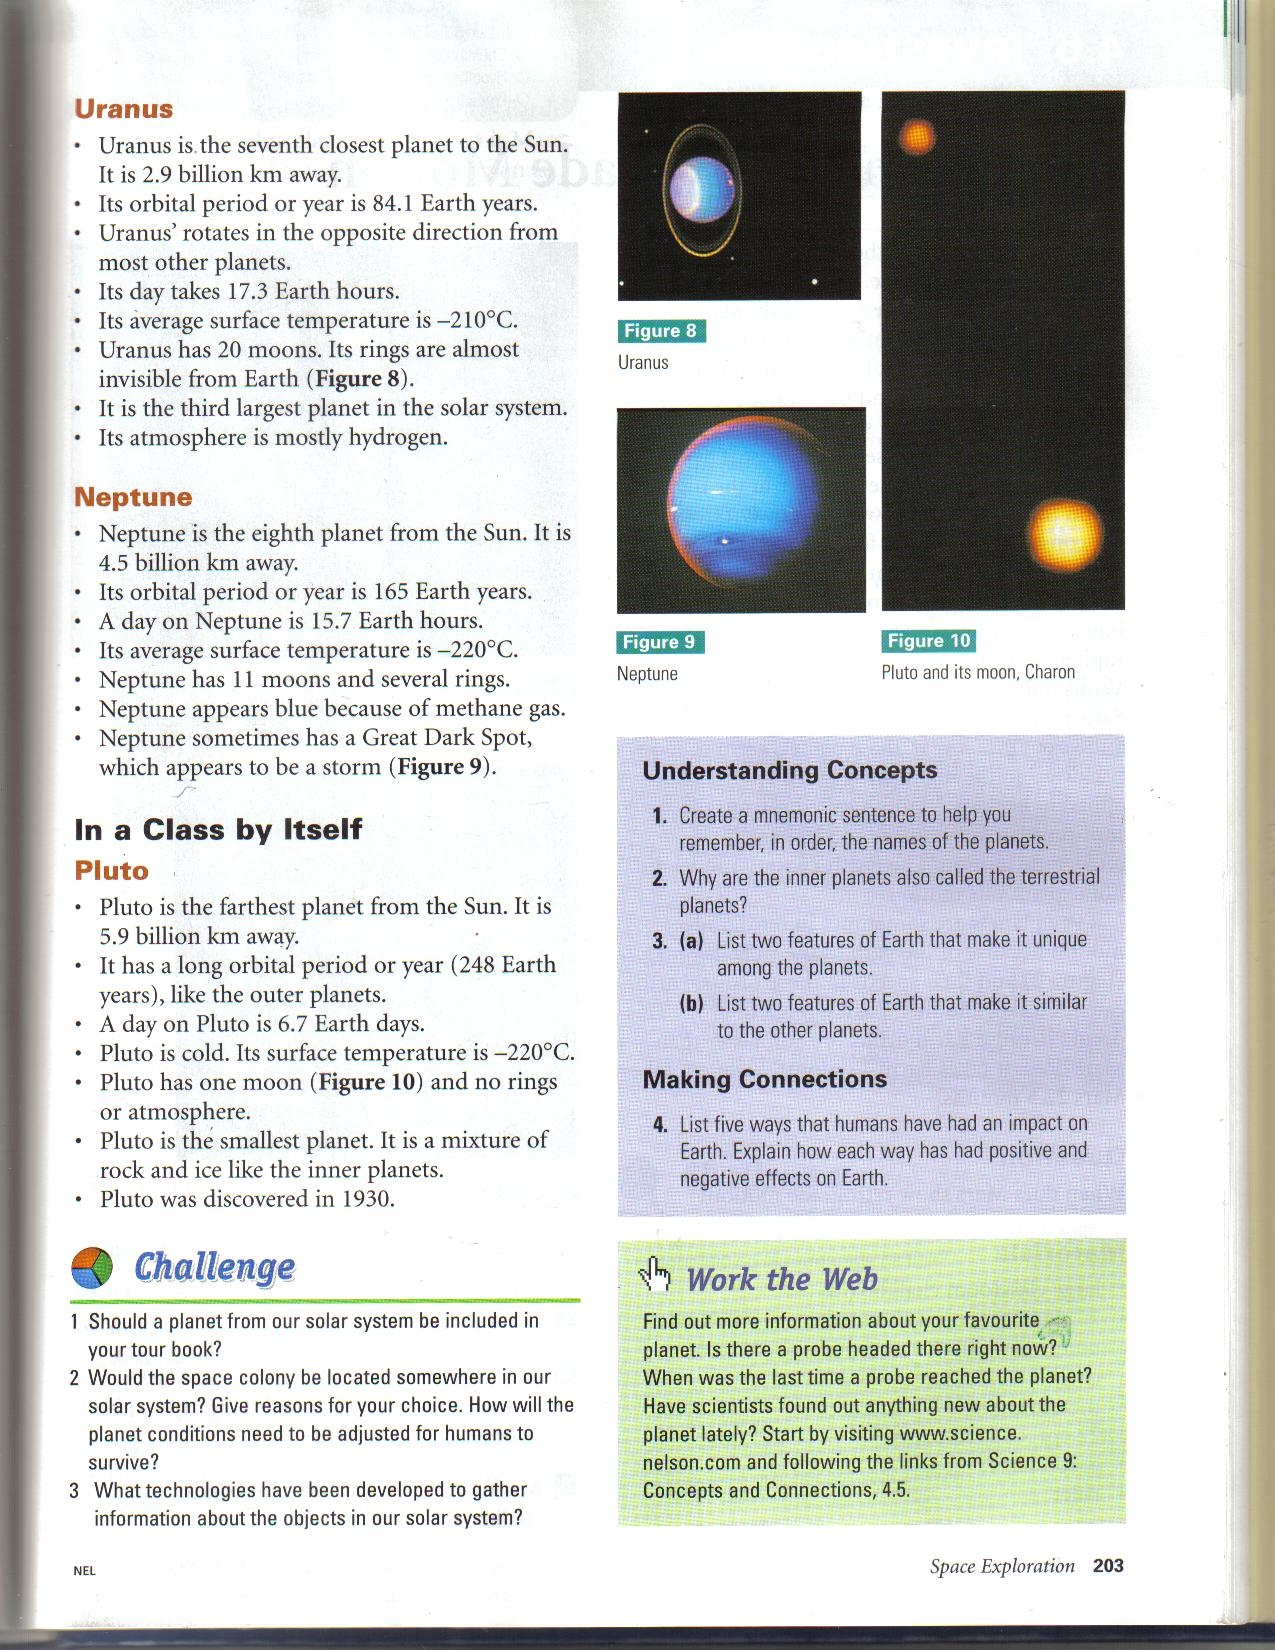 bill nye space exploration worksheet page 3 pics about space. Black Bedroom Furniture Sets. Home Design Ideas